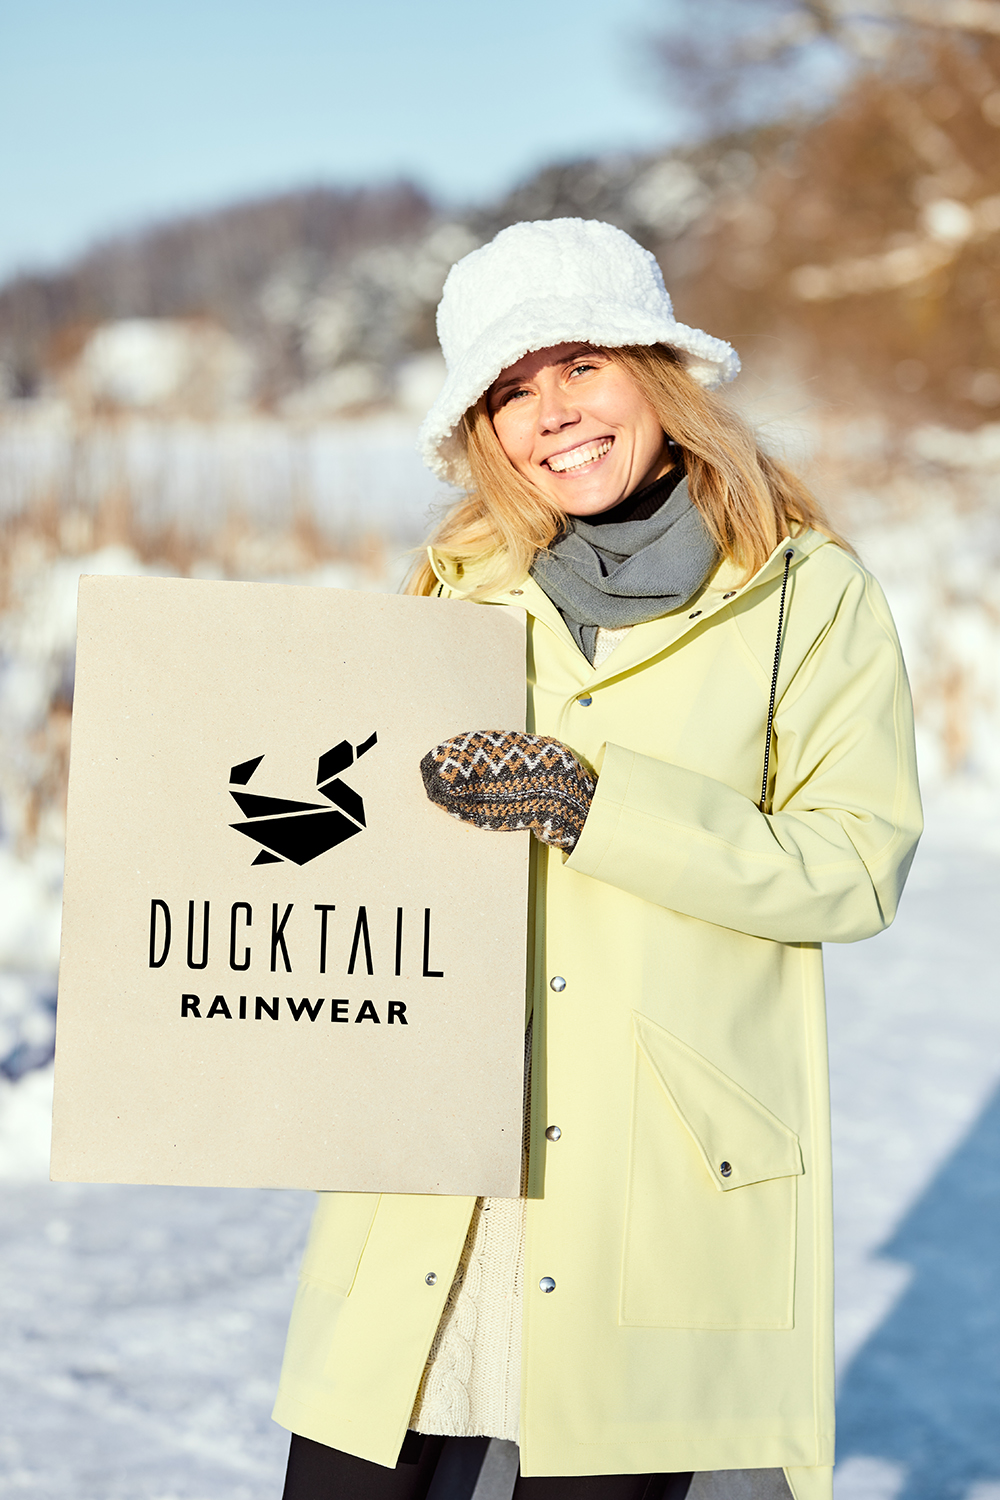 ice skating in winter with a raincoat